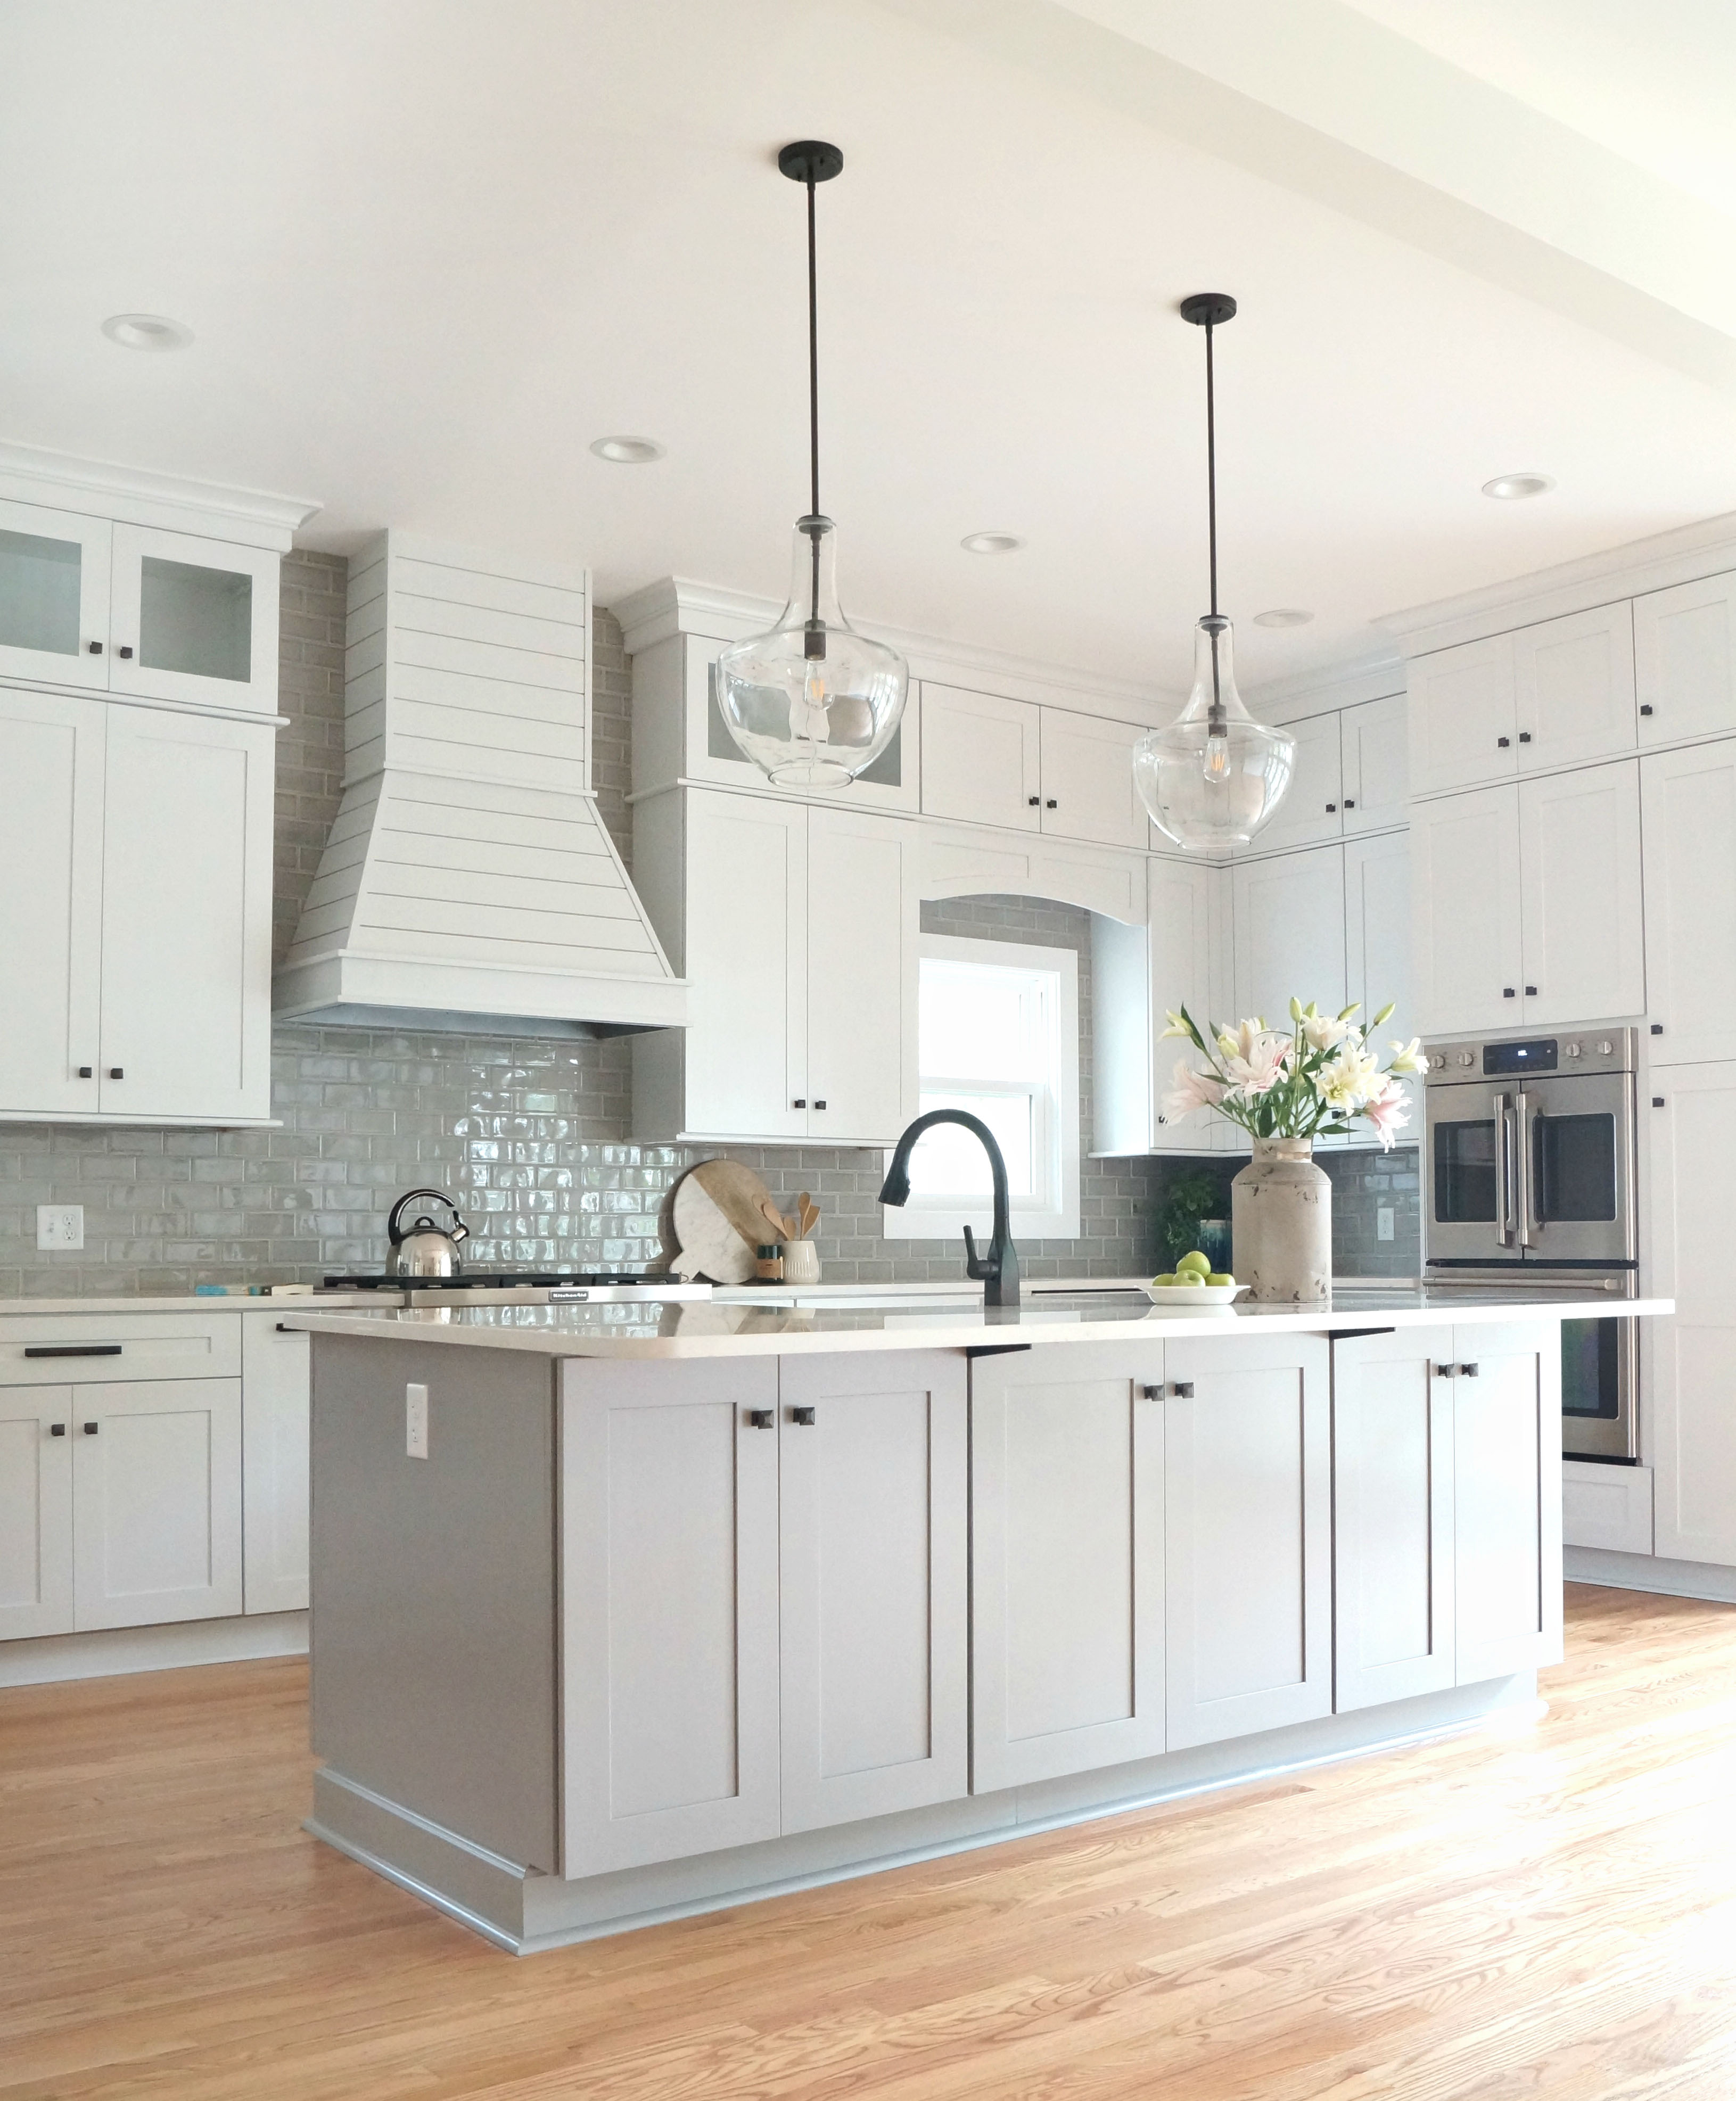 remodeled kitchen with white and gray cabinets and stainless steel appliances